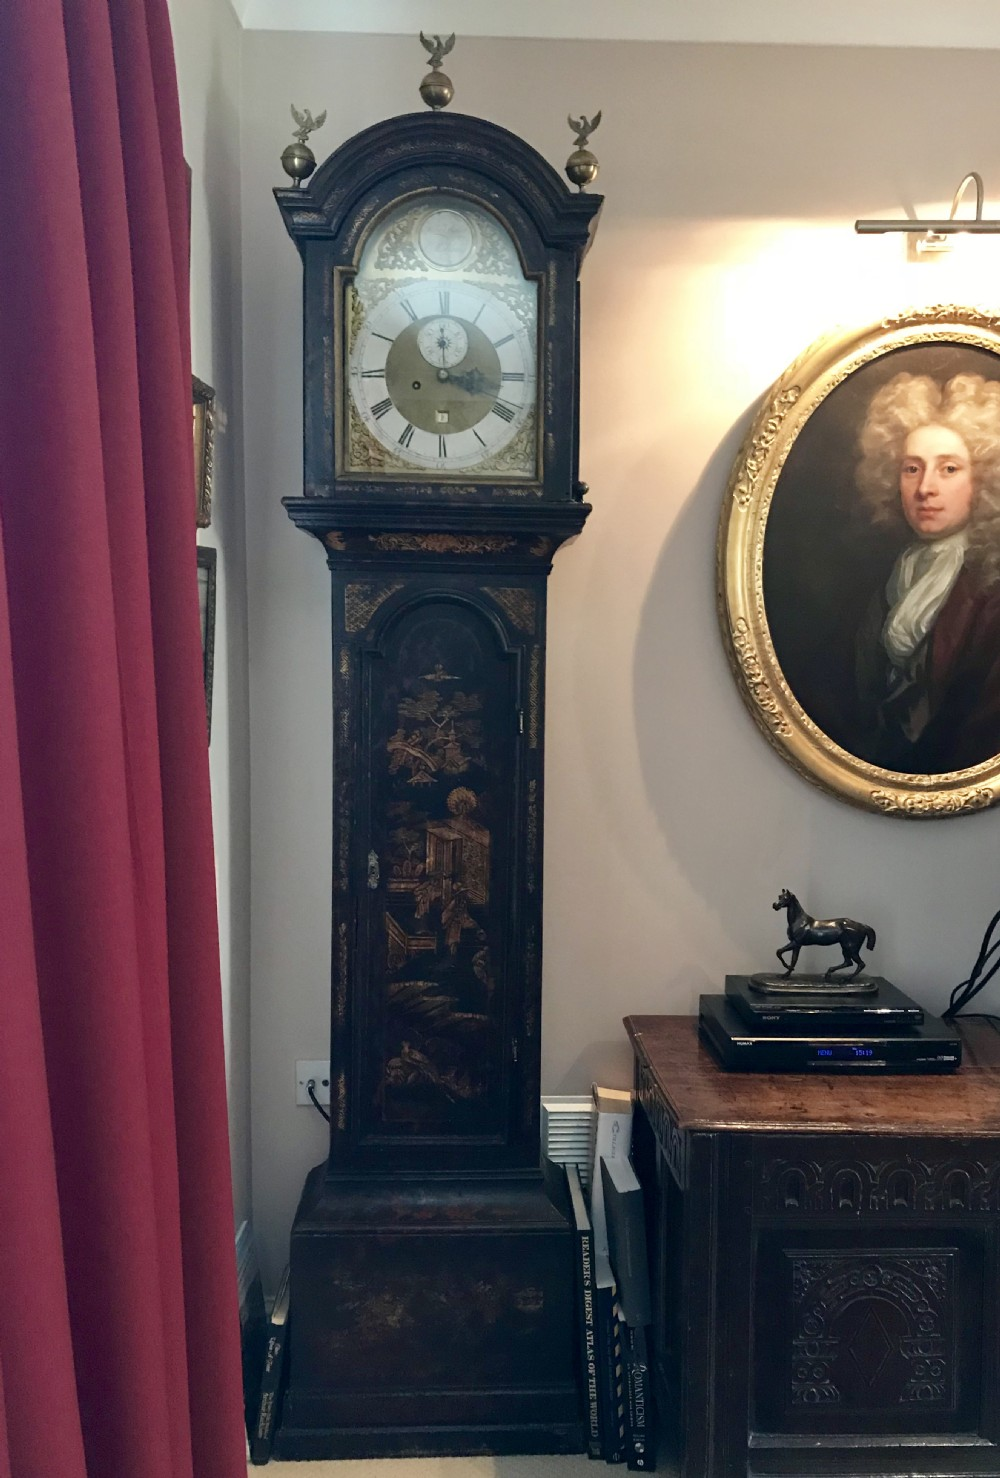 eight day longcase clock c1770 by henry baker of malling